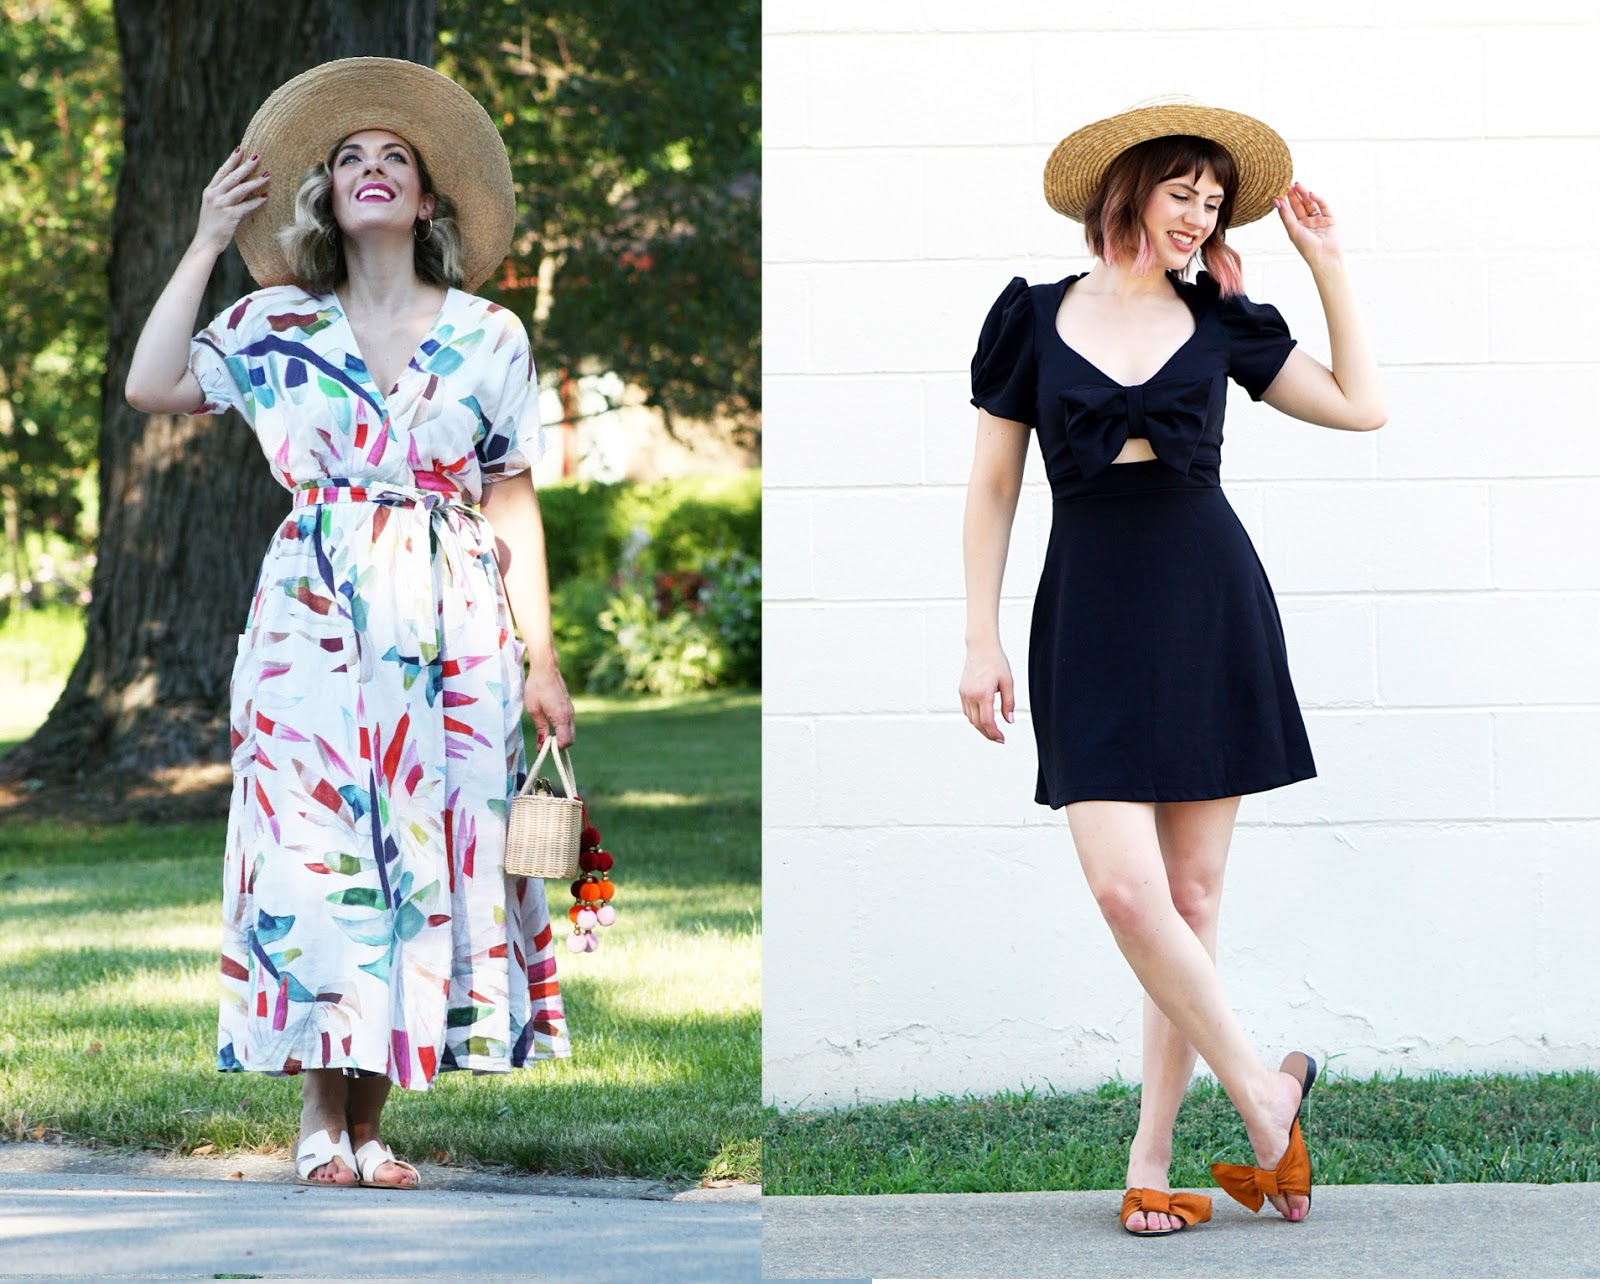 Fashion style How to straw wear hat for woman